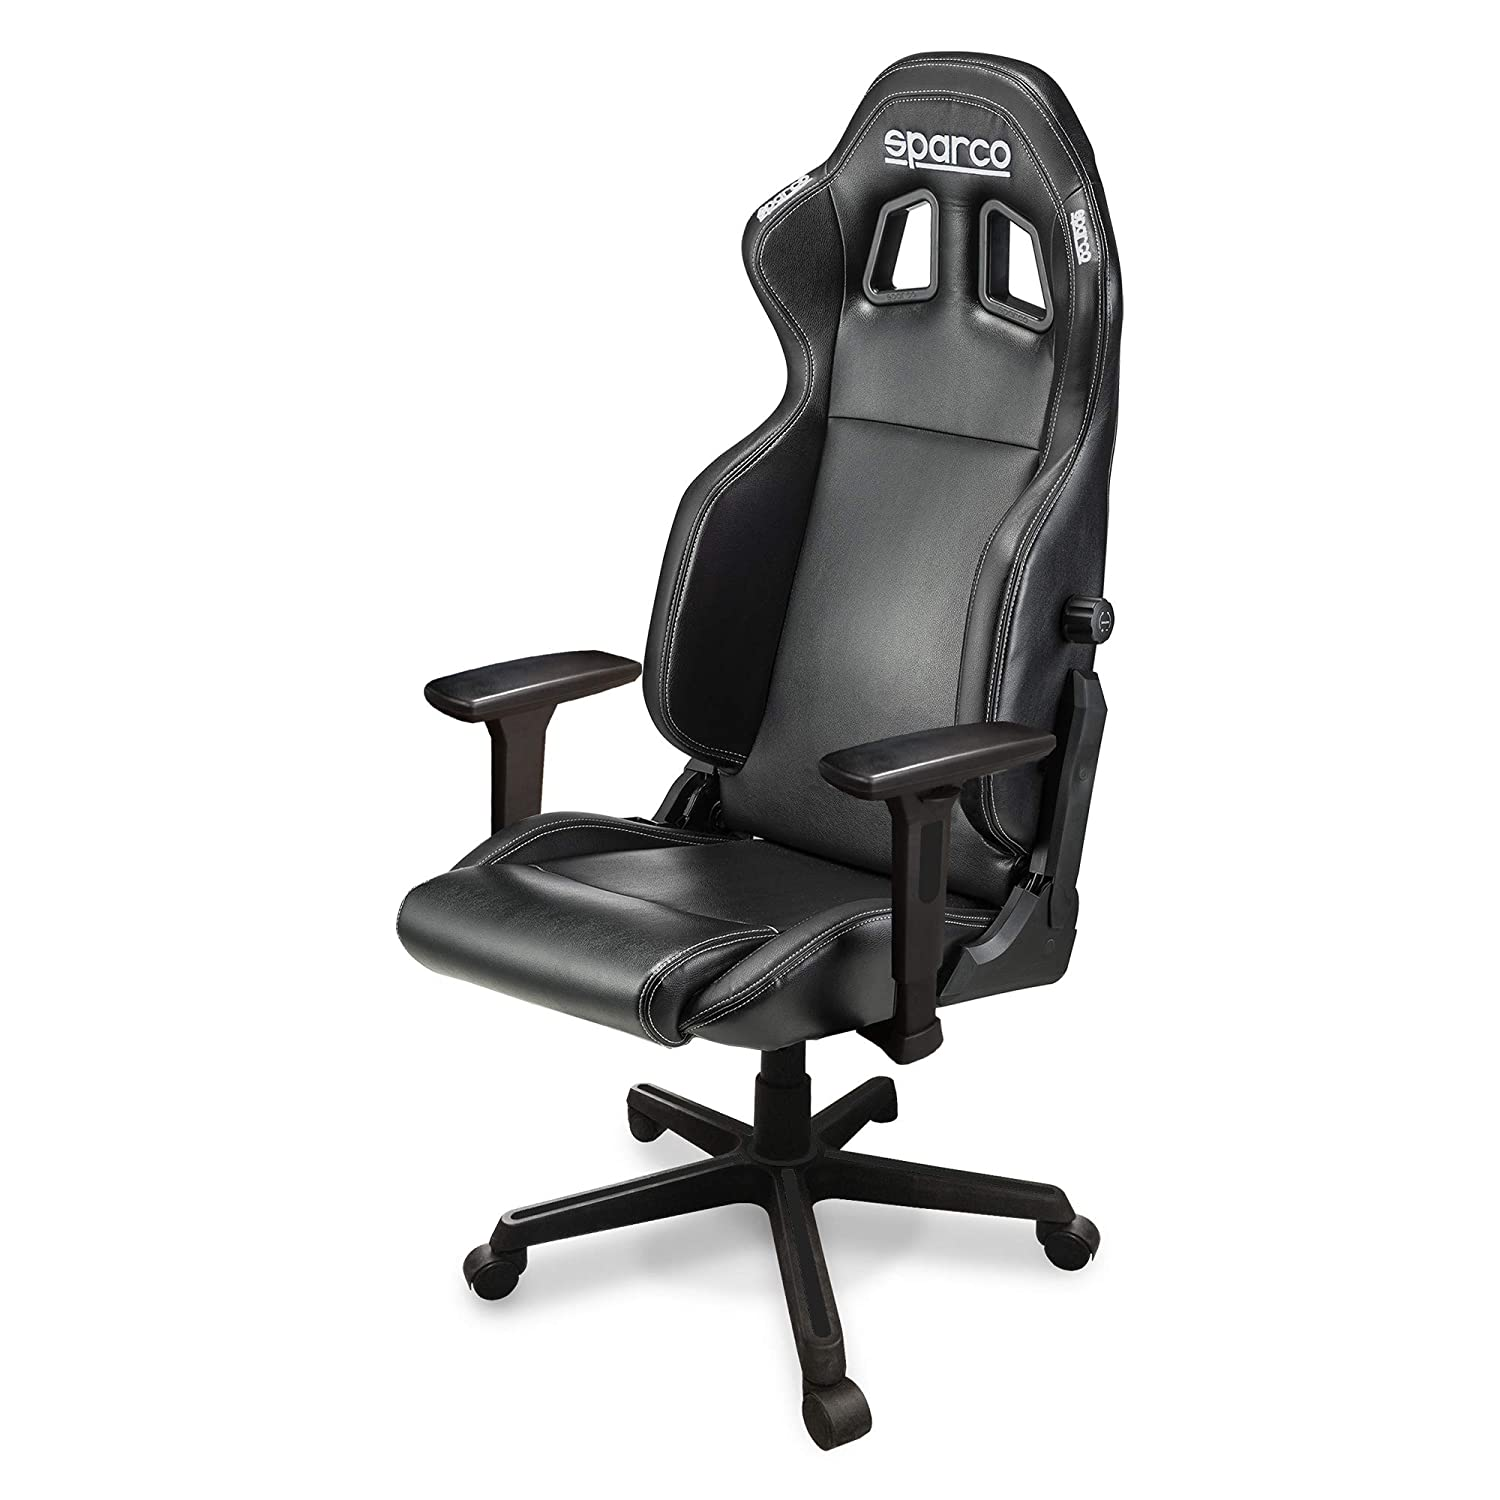 Amazon.com: ICON Gaming Chair/Office Chair Black/Black ...